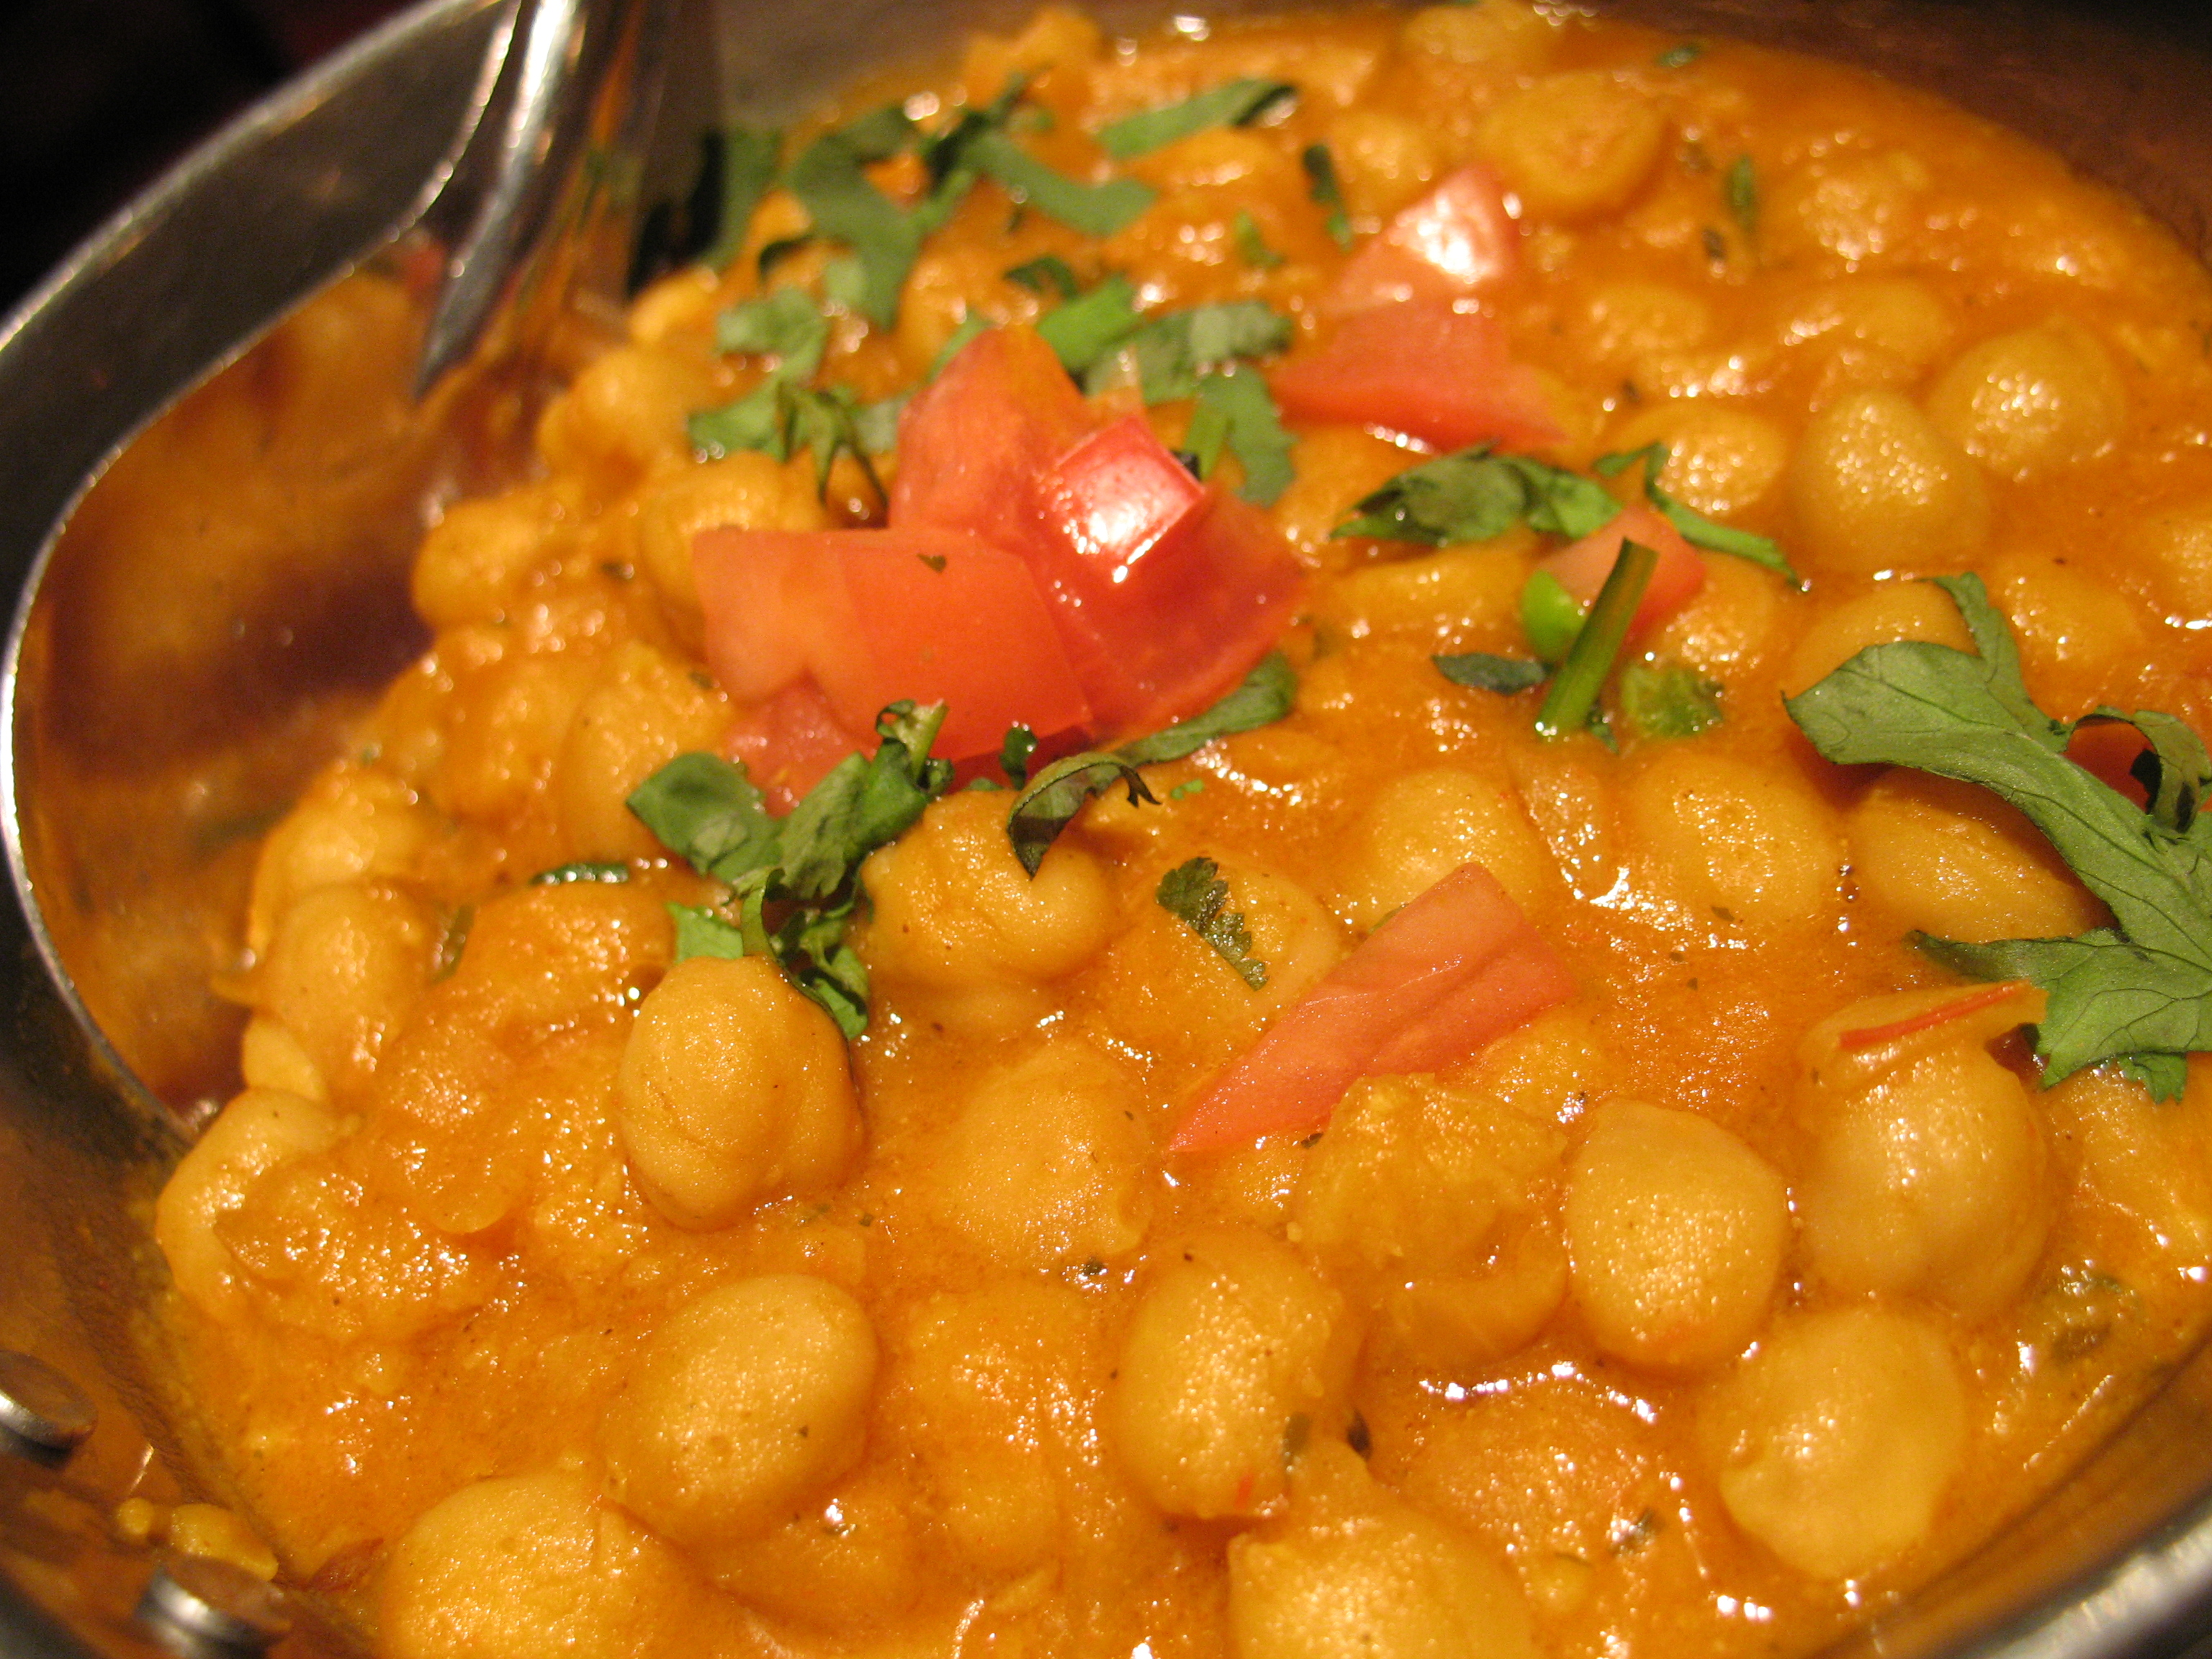 File:Chana masala.jpg - Wikipedia, the free encyclopedia